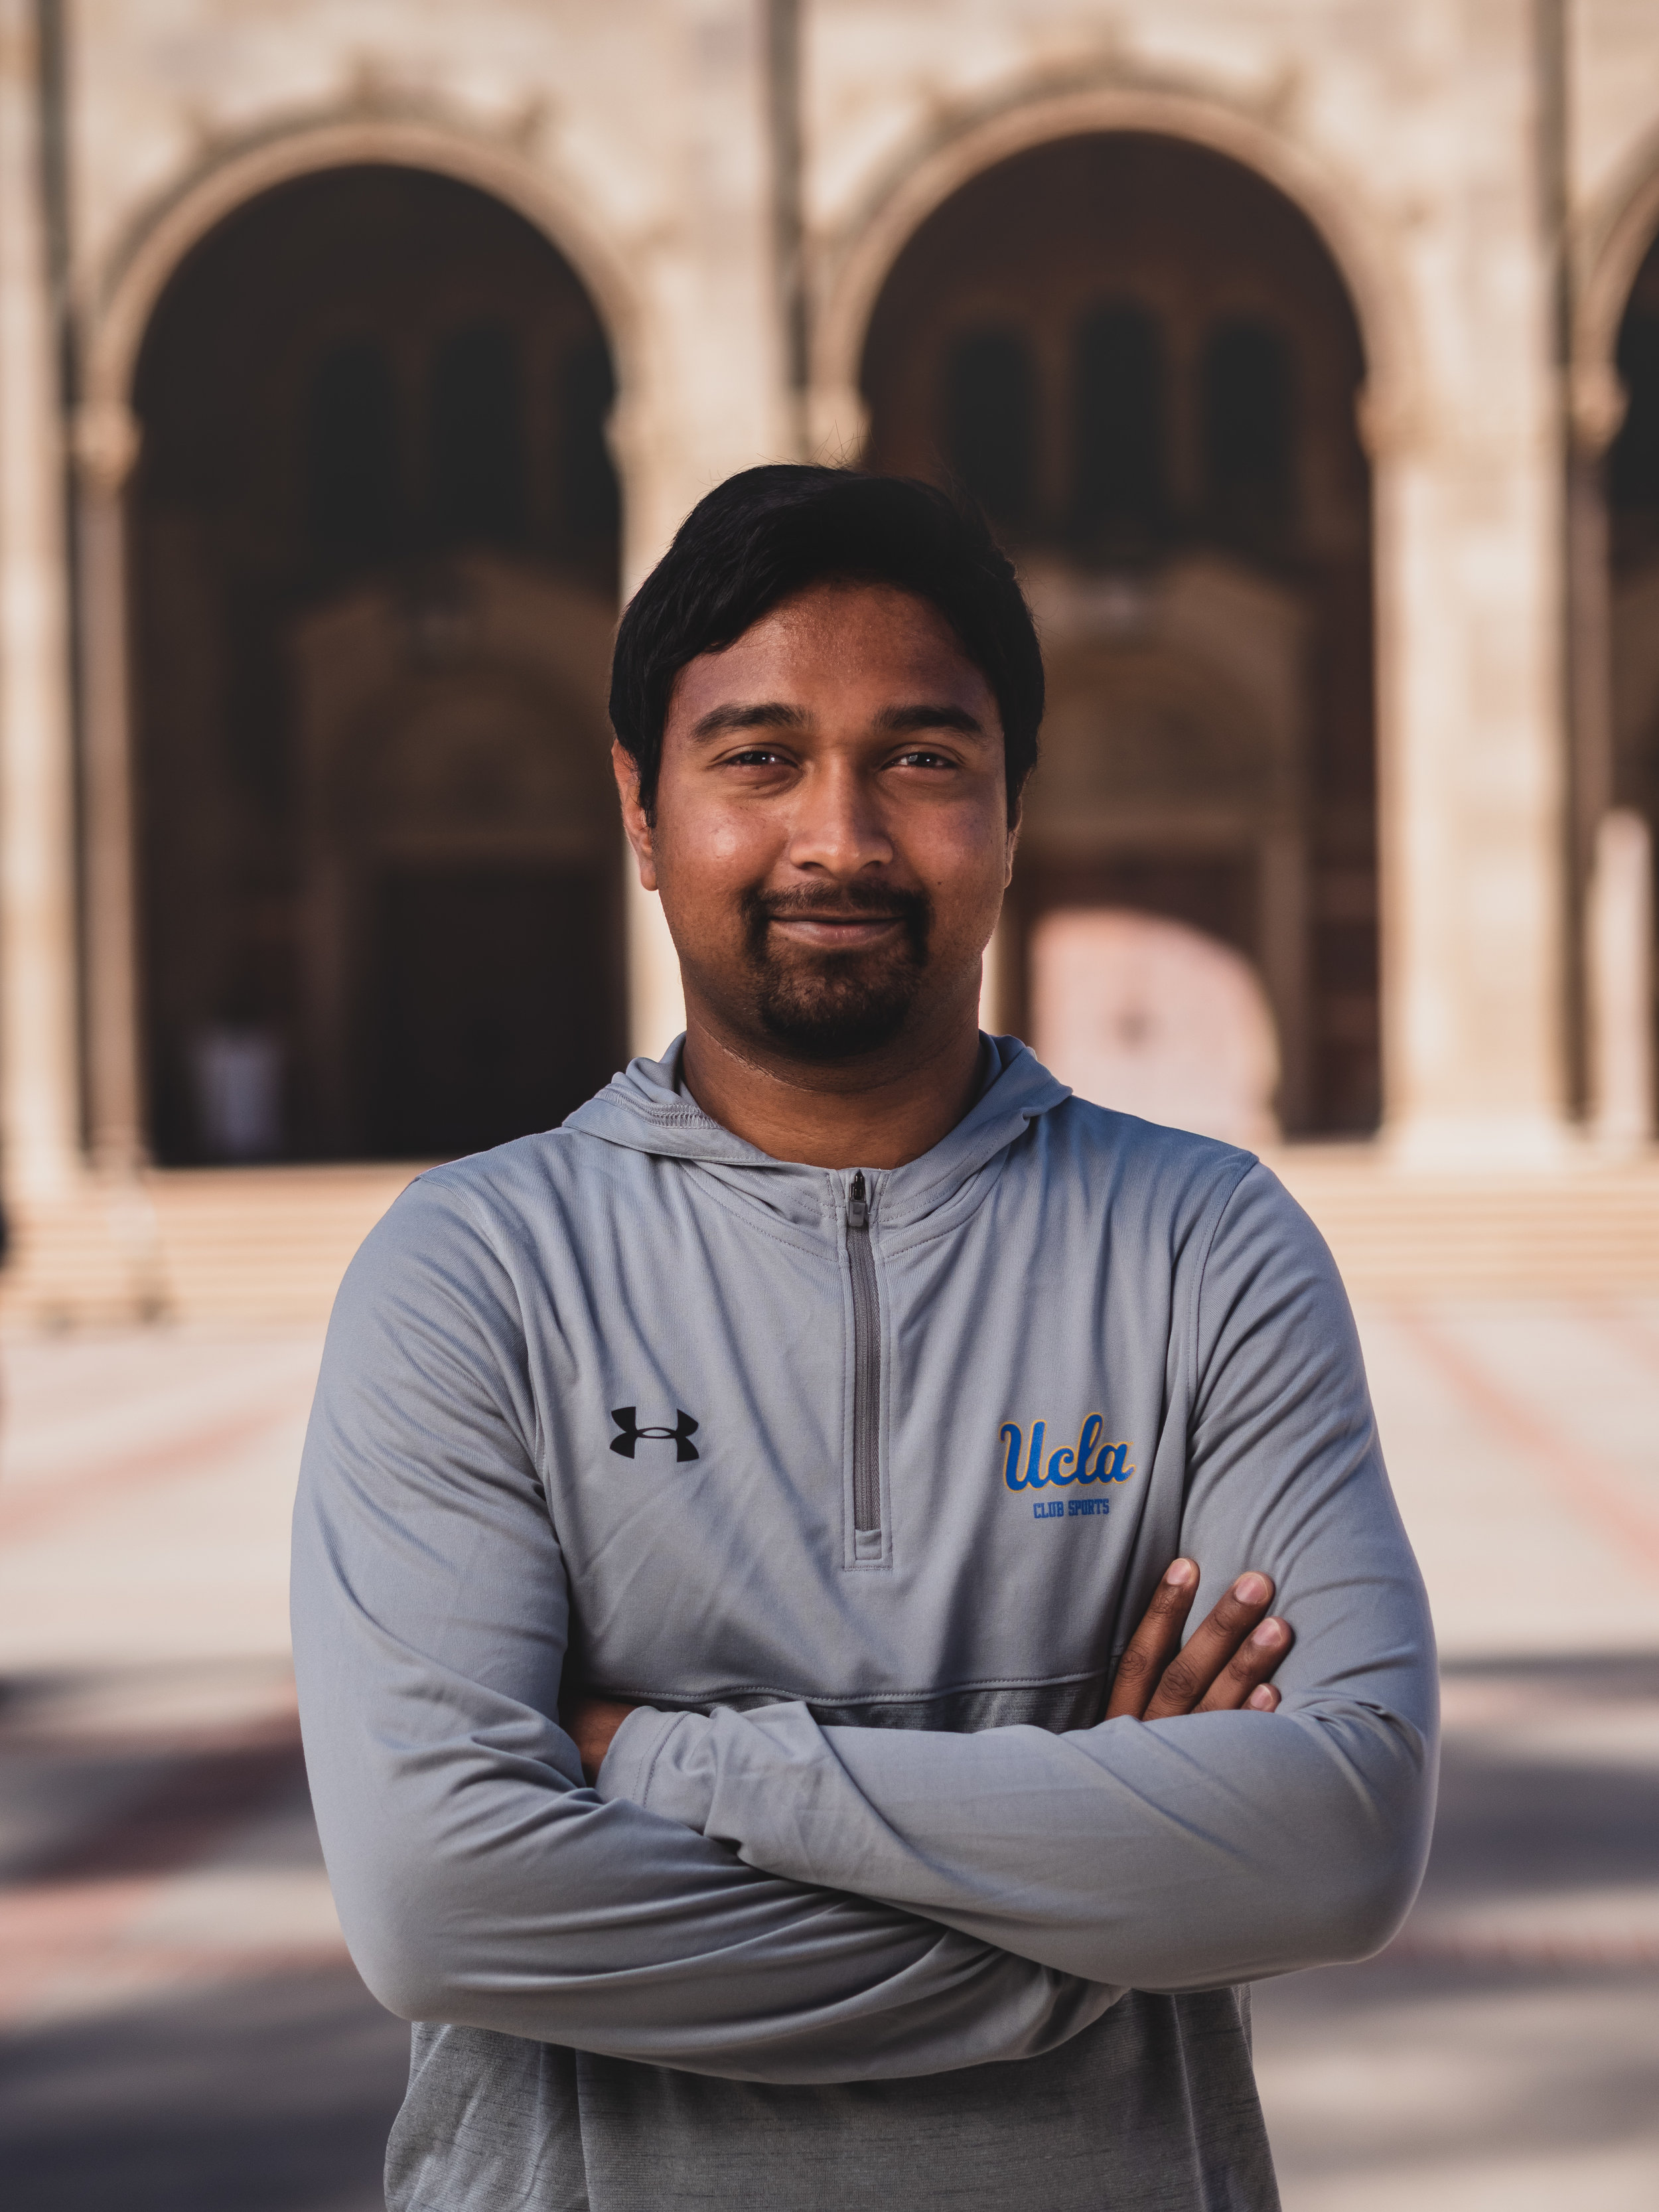 Gavin Dayanga - Gavin Dayanga recently joined the UCLA IoES Center for Climate Science as a graduate student. He is part of a large collaborative project that seeks to understand how climate change affects drought, vegetation, and wildfire in the future.